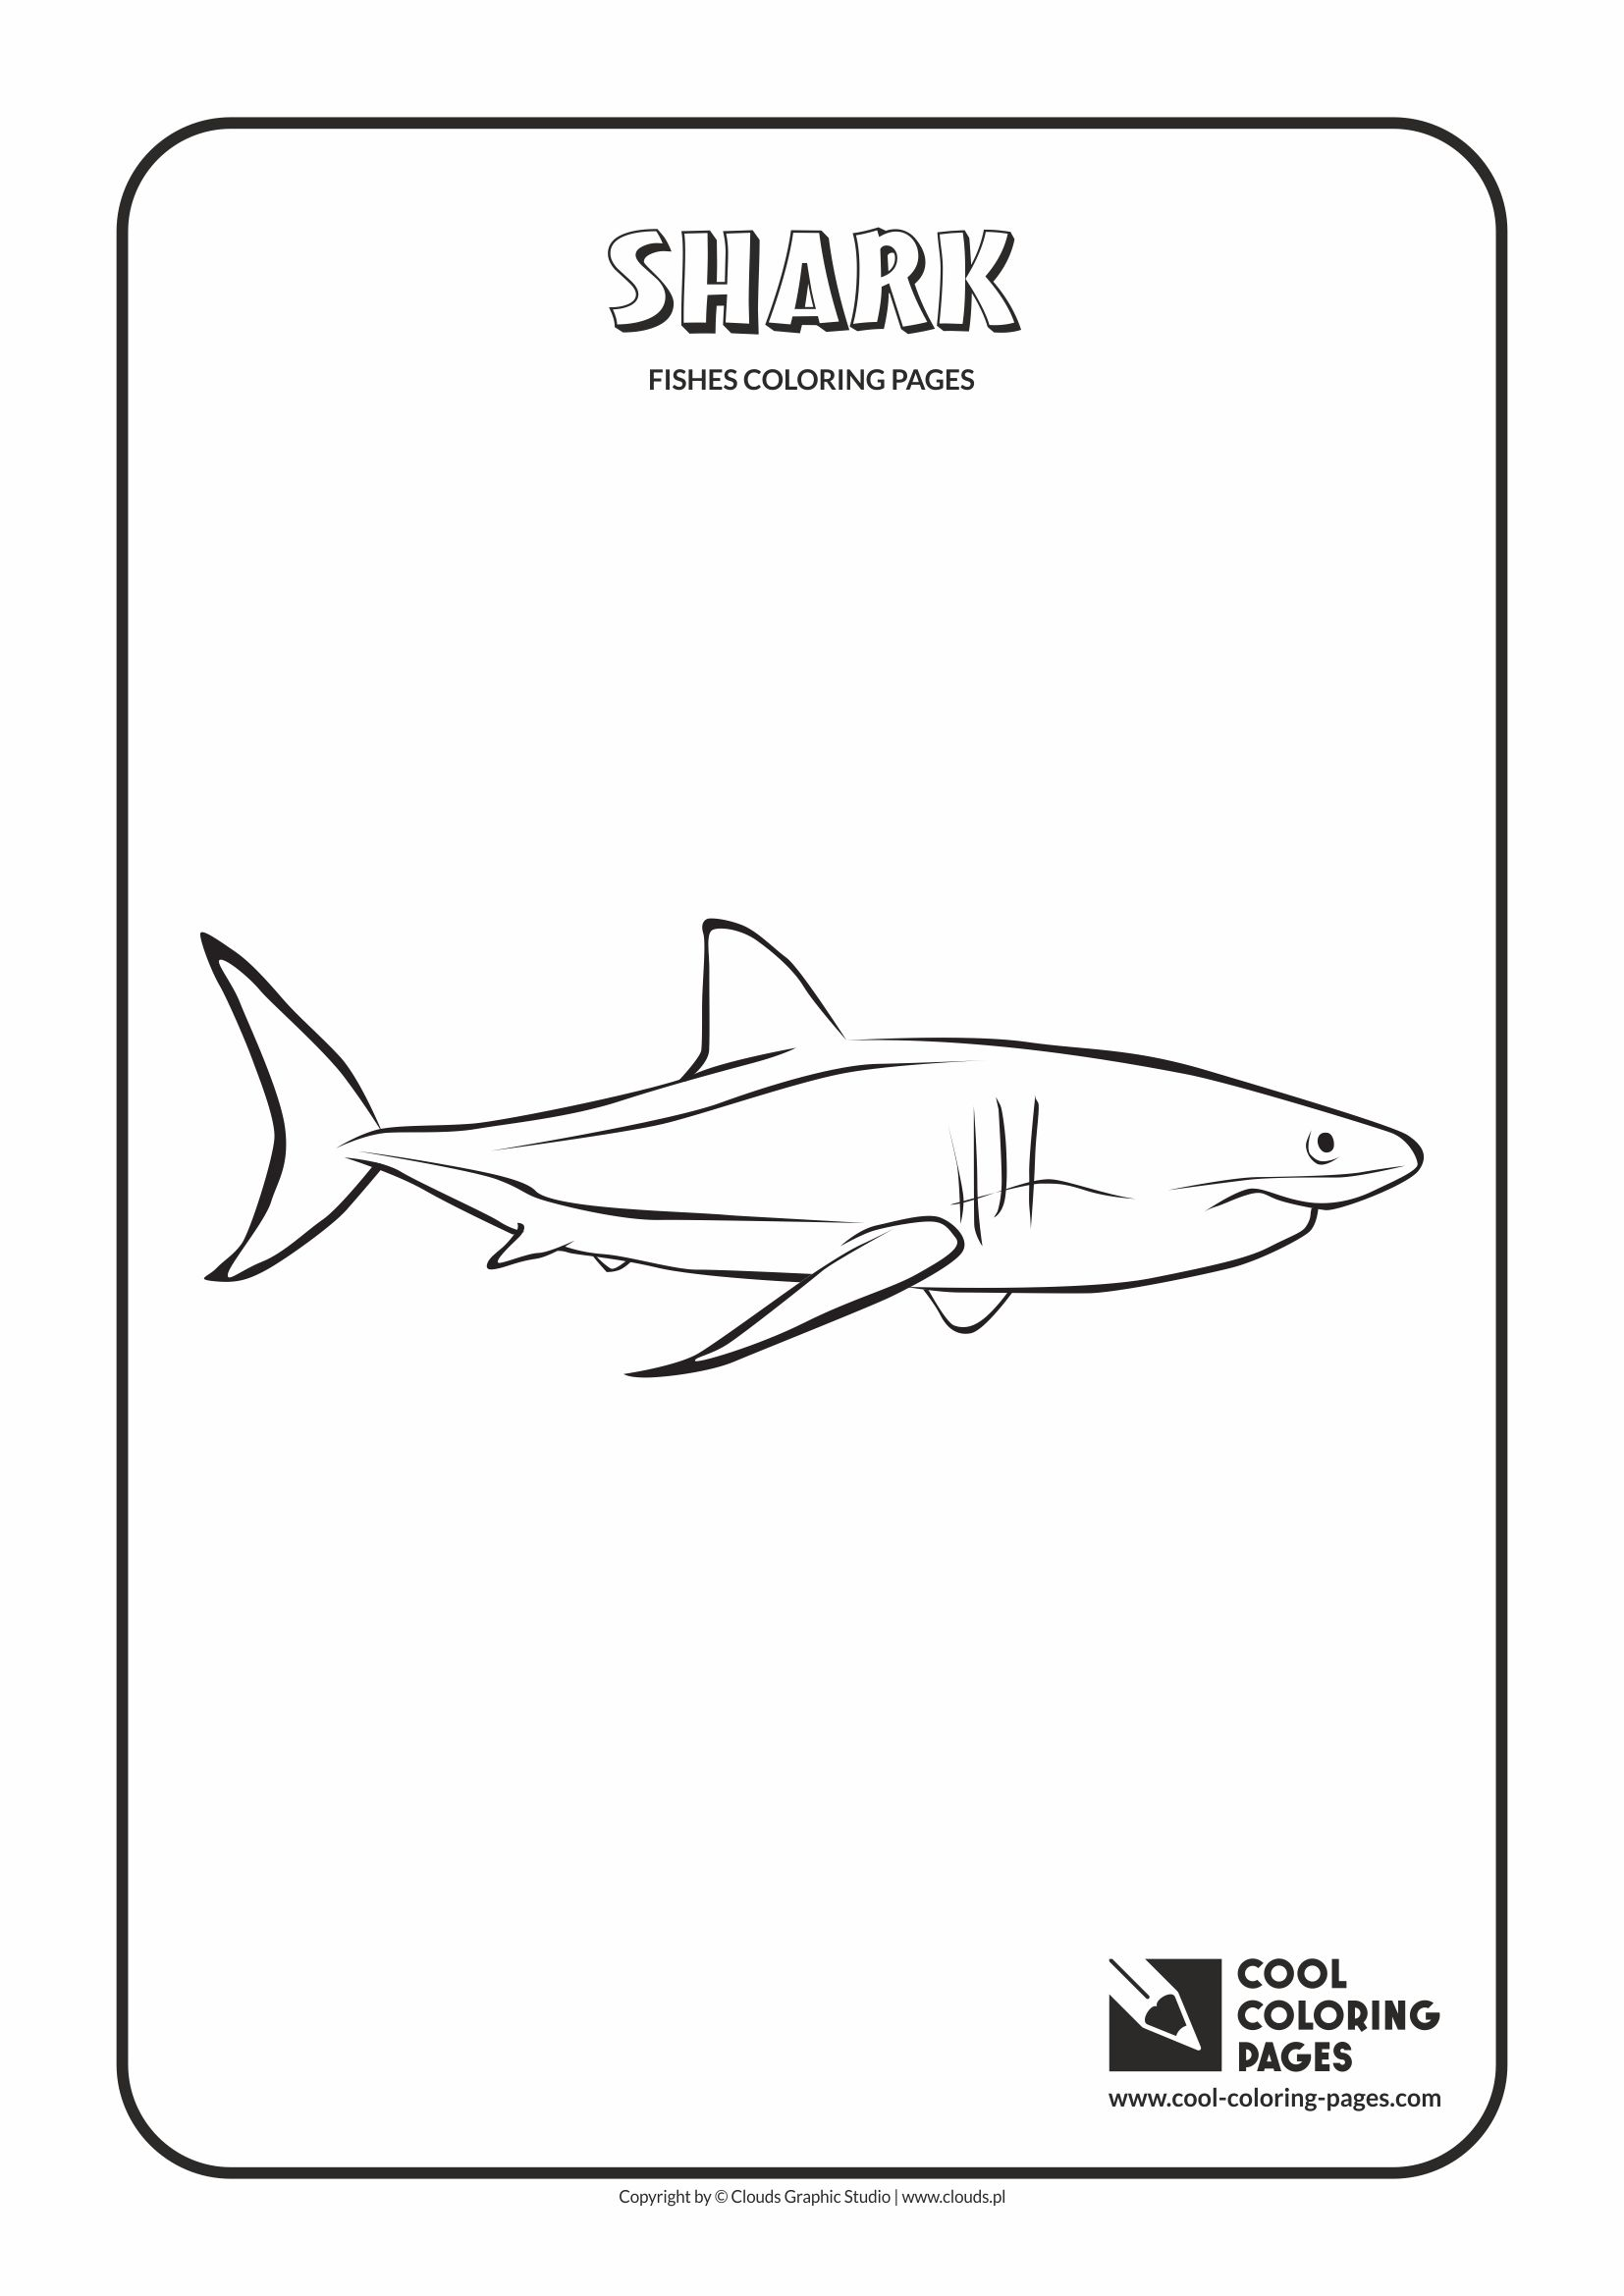 Cool Coloring Pages Shark Coloring Page